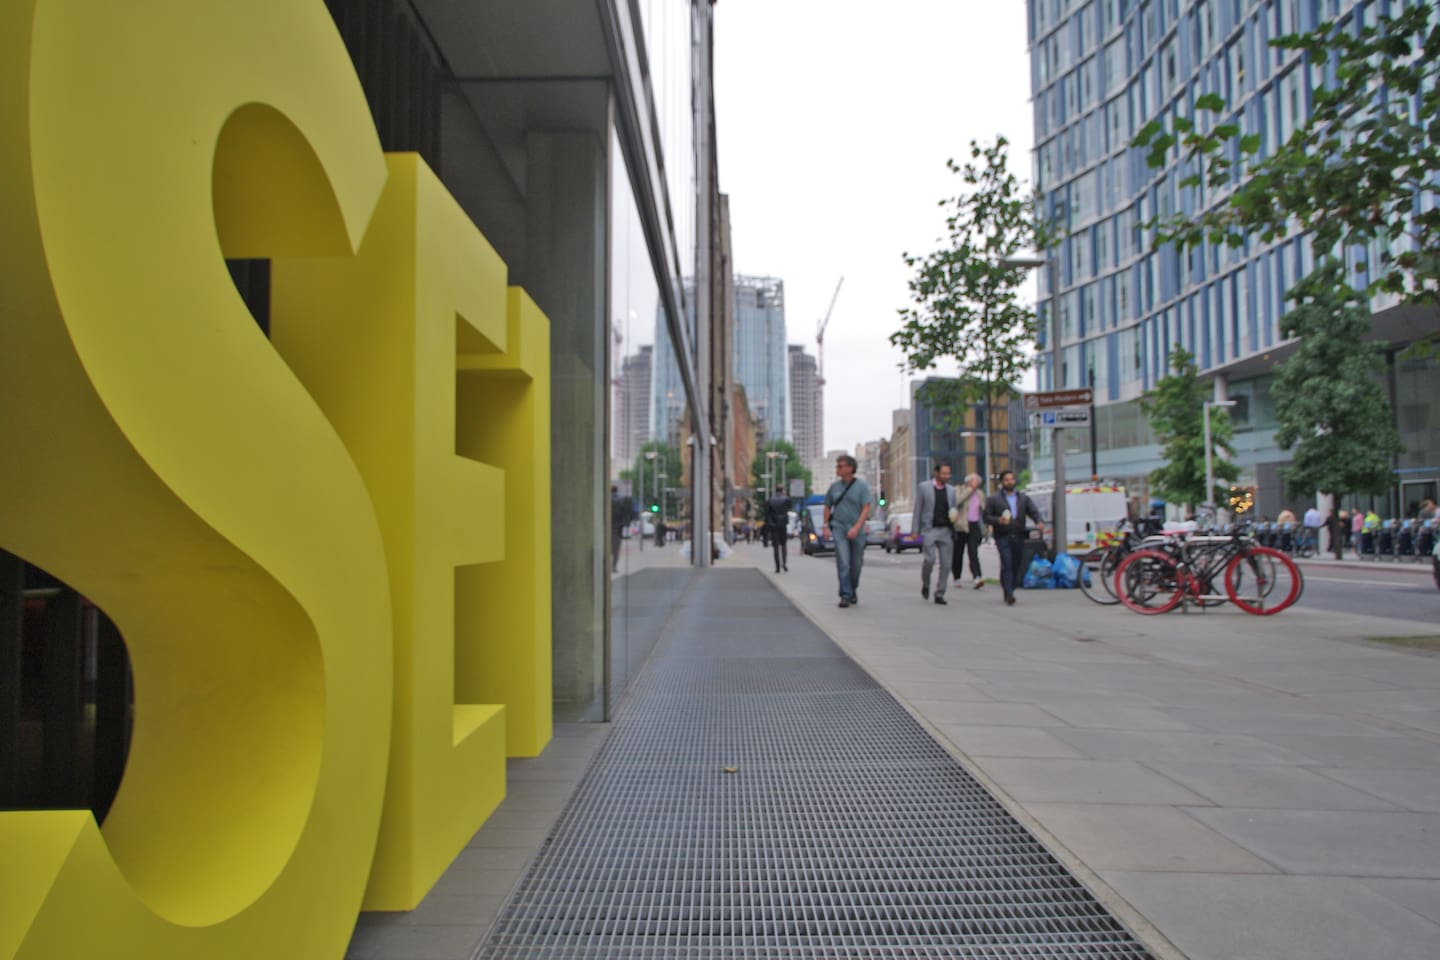 97 Southwark St, in the heart of SE1! Right near the Tate Modern, London